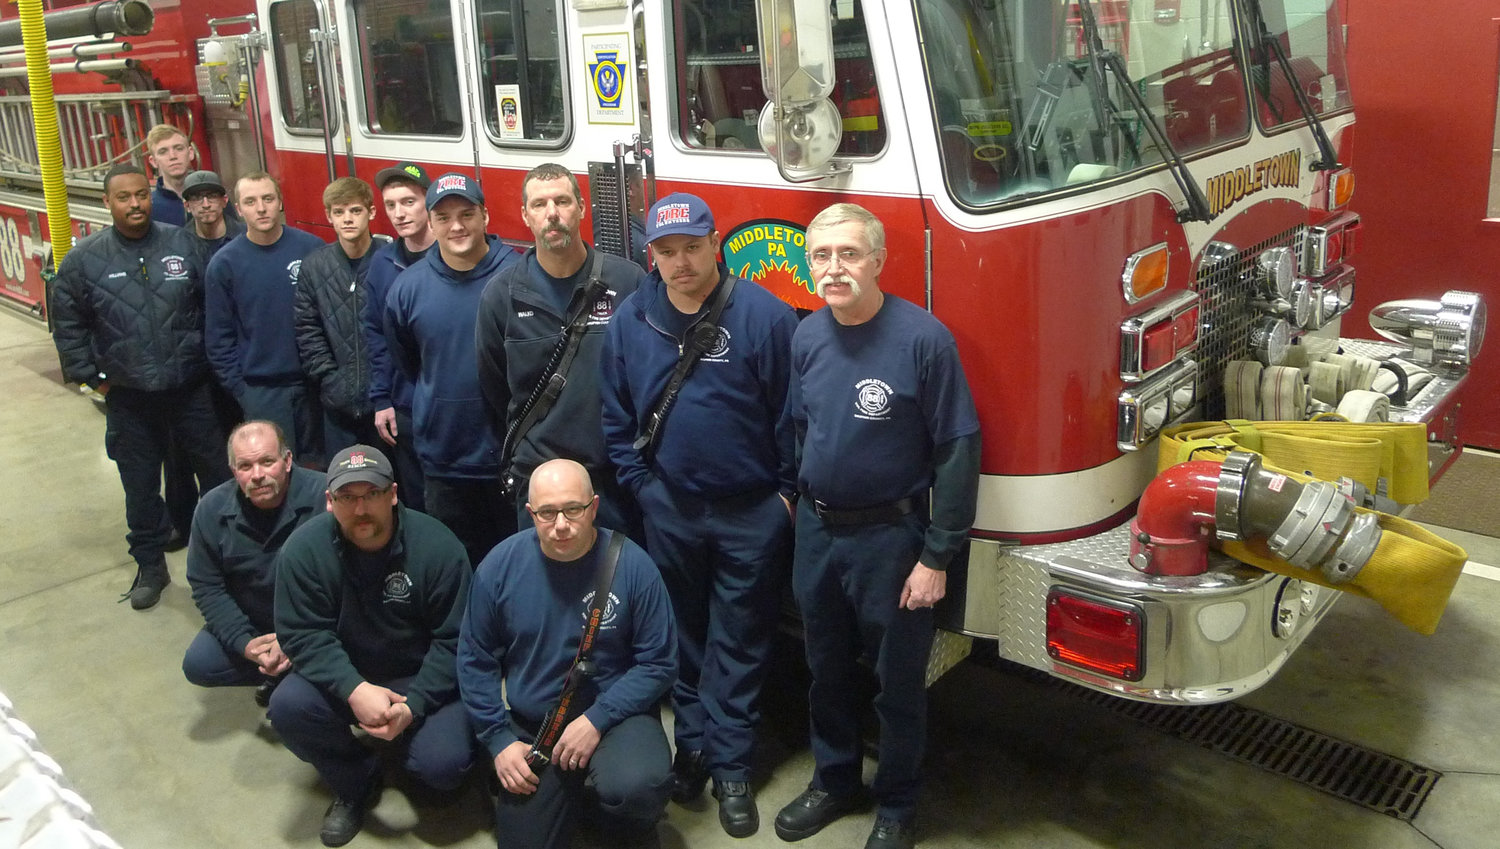 Members of Middletown Volunteer Fire Company pose in front of Engine 88 at the fire station on Adelia Street during a break from a Thursday night training session. The bronze decal that signifies 50 percent or more of the company achieving Firefighter 1 certification surrounds the blue Keystone that appears on Engine 88 that the company received from the Office of the State Fire Commissioner.